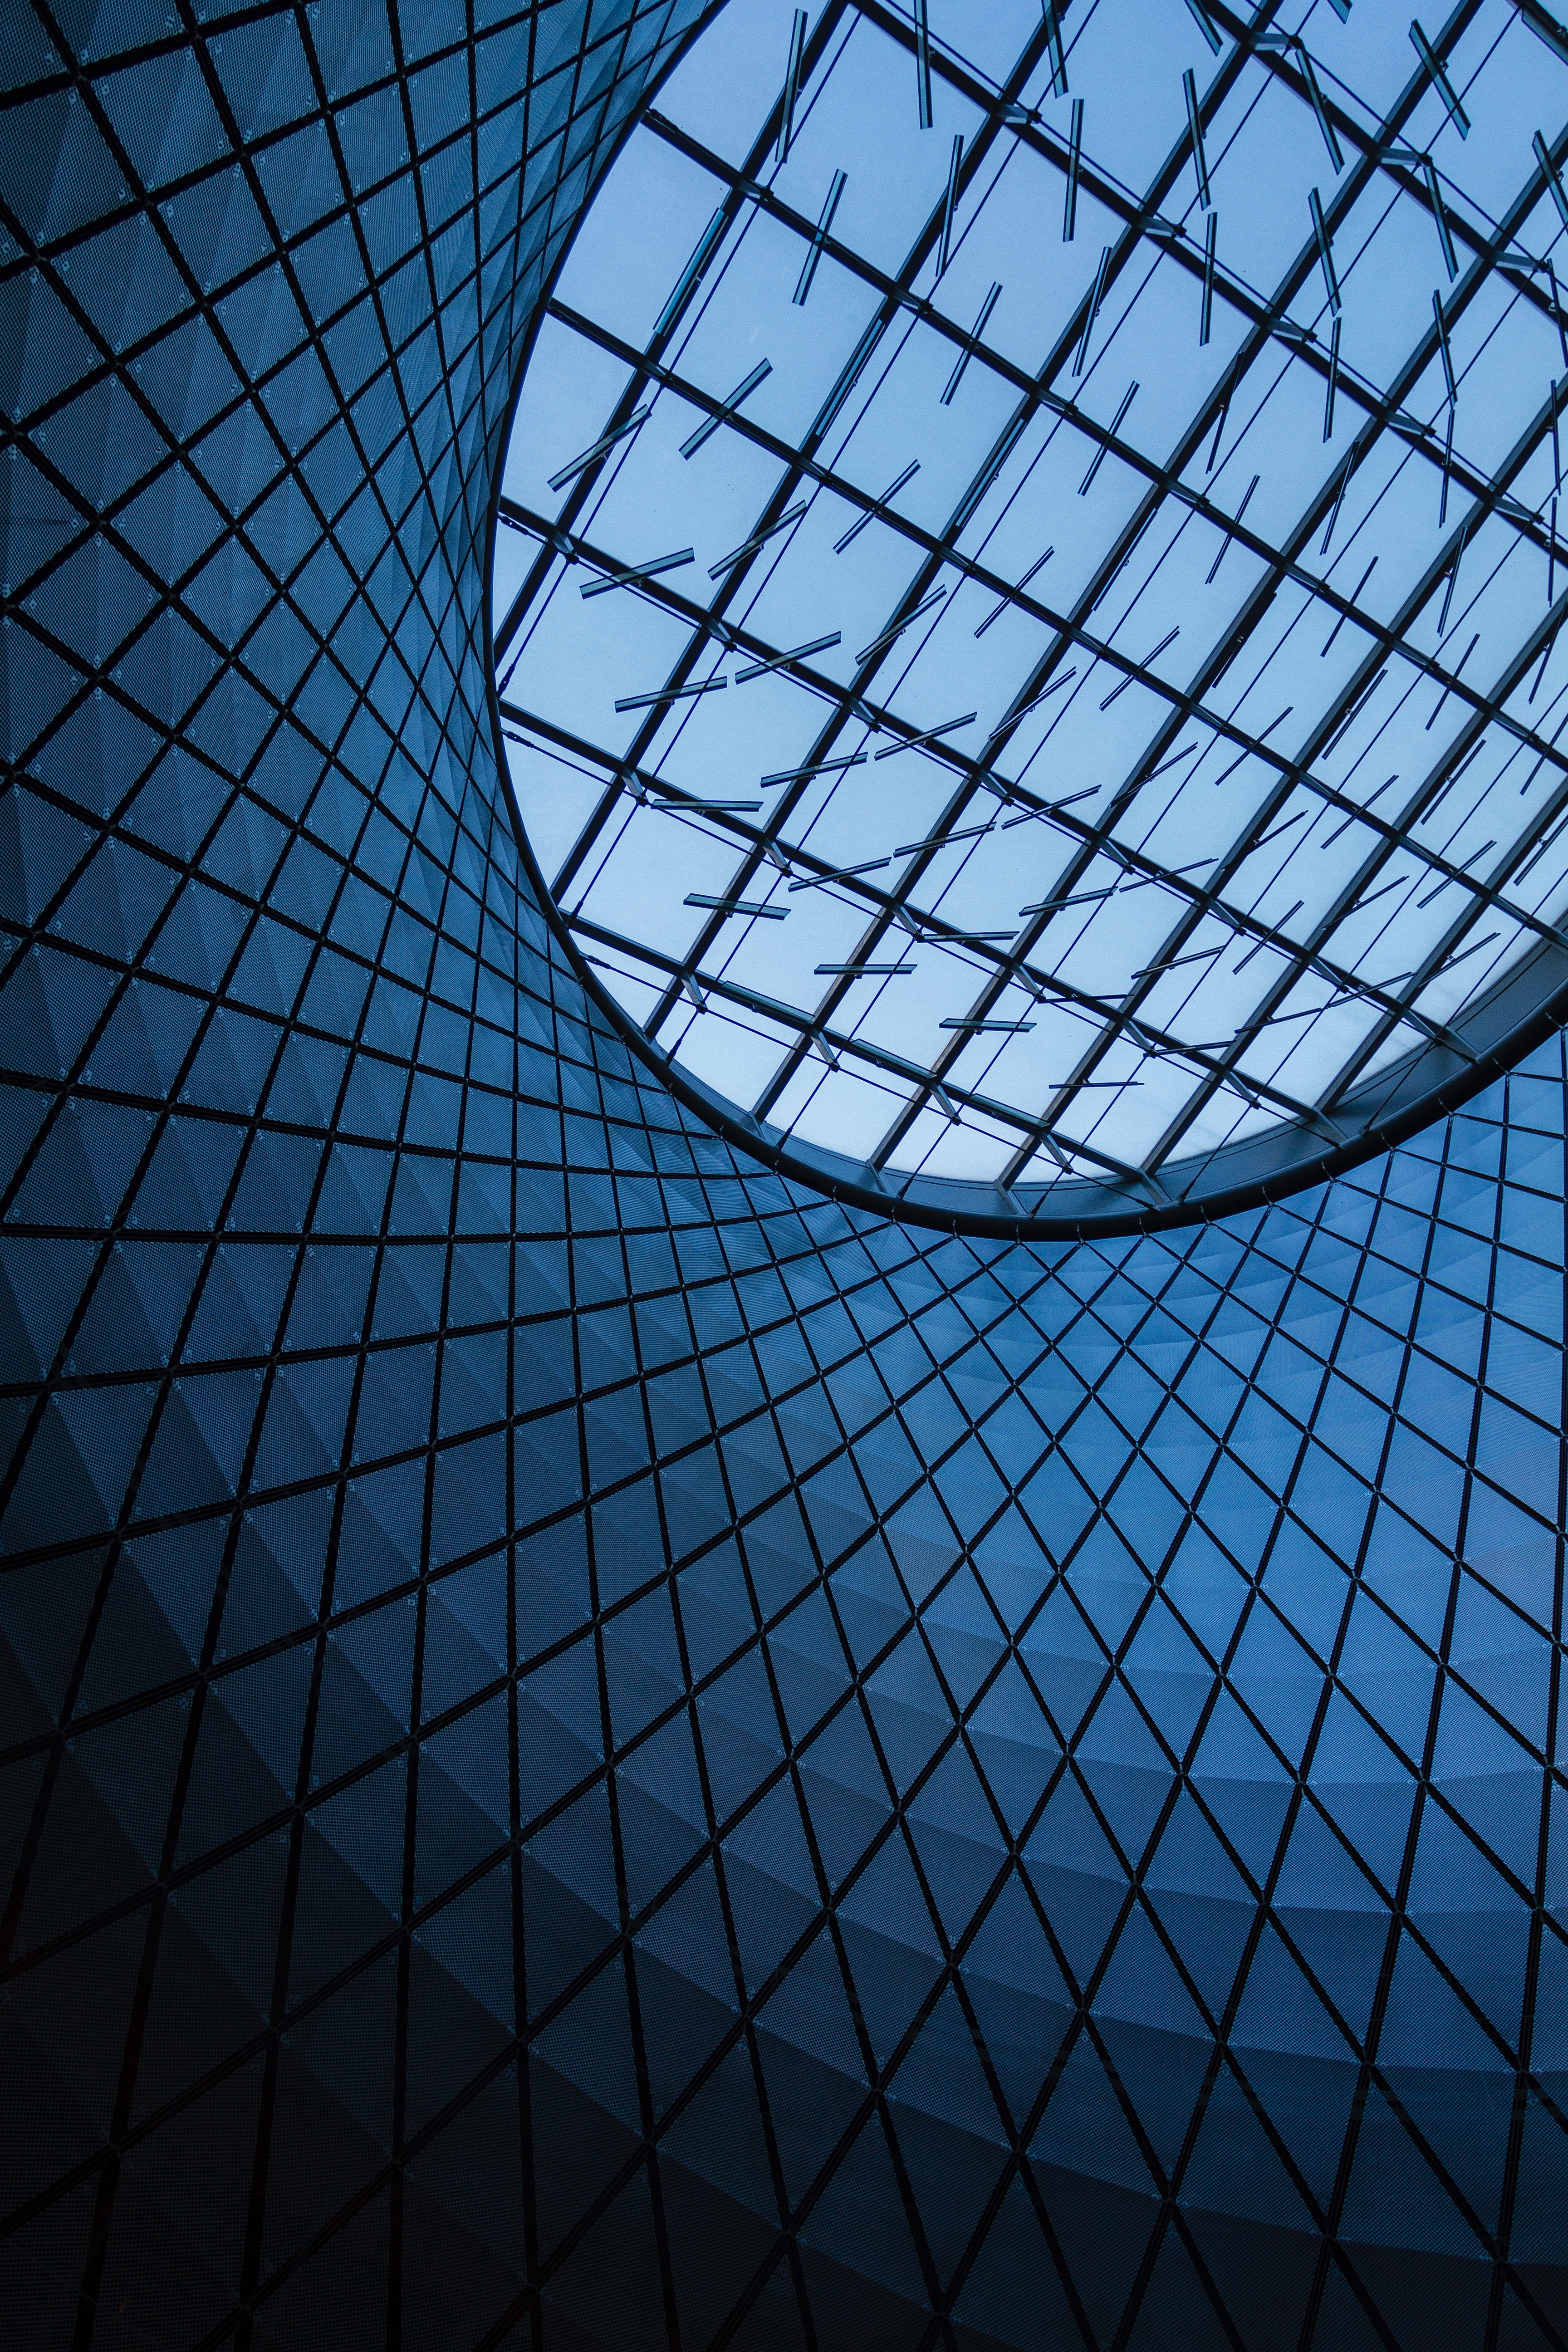 Trending Wallpapers For Iphone X Fulton Center Nyc Iphone Wallpaper Idrop News